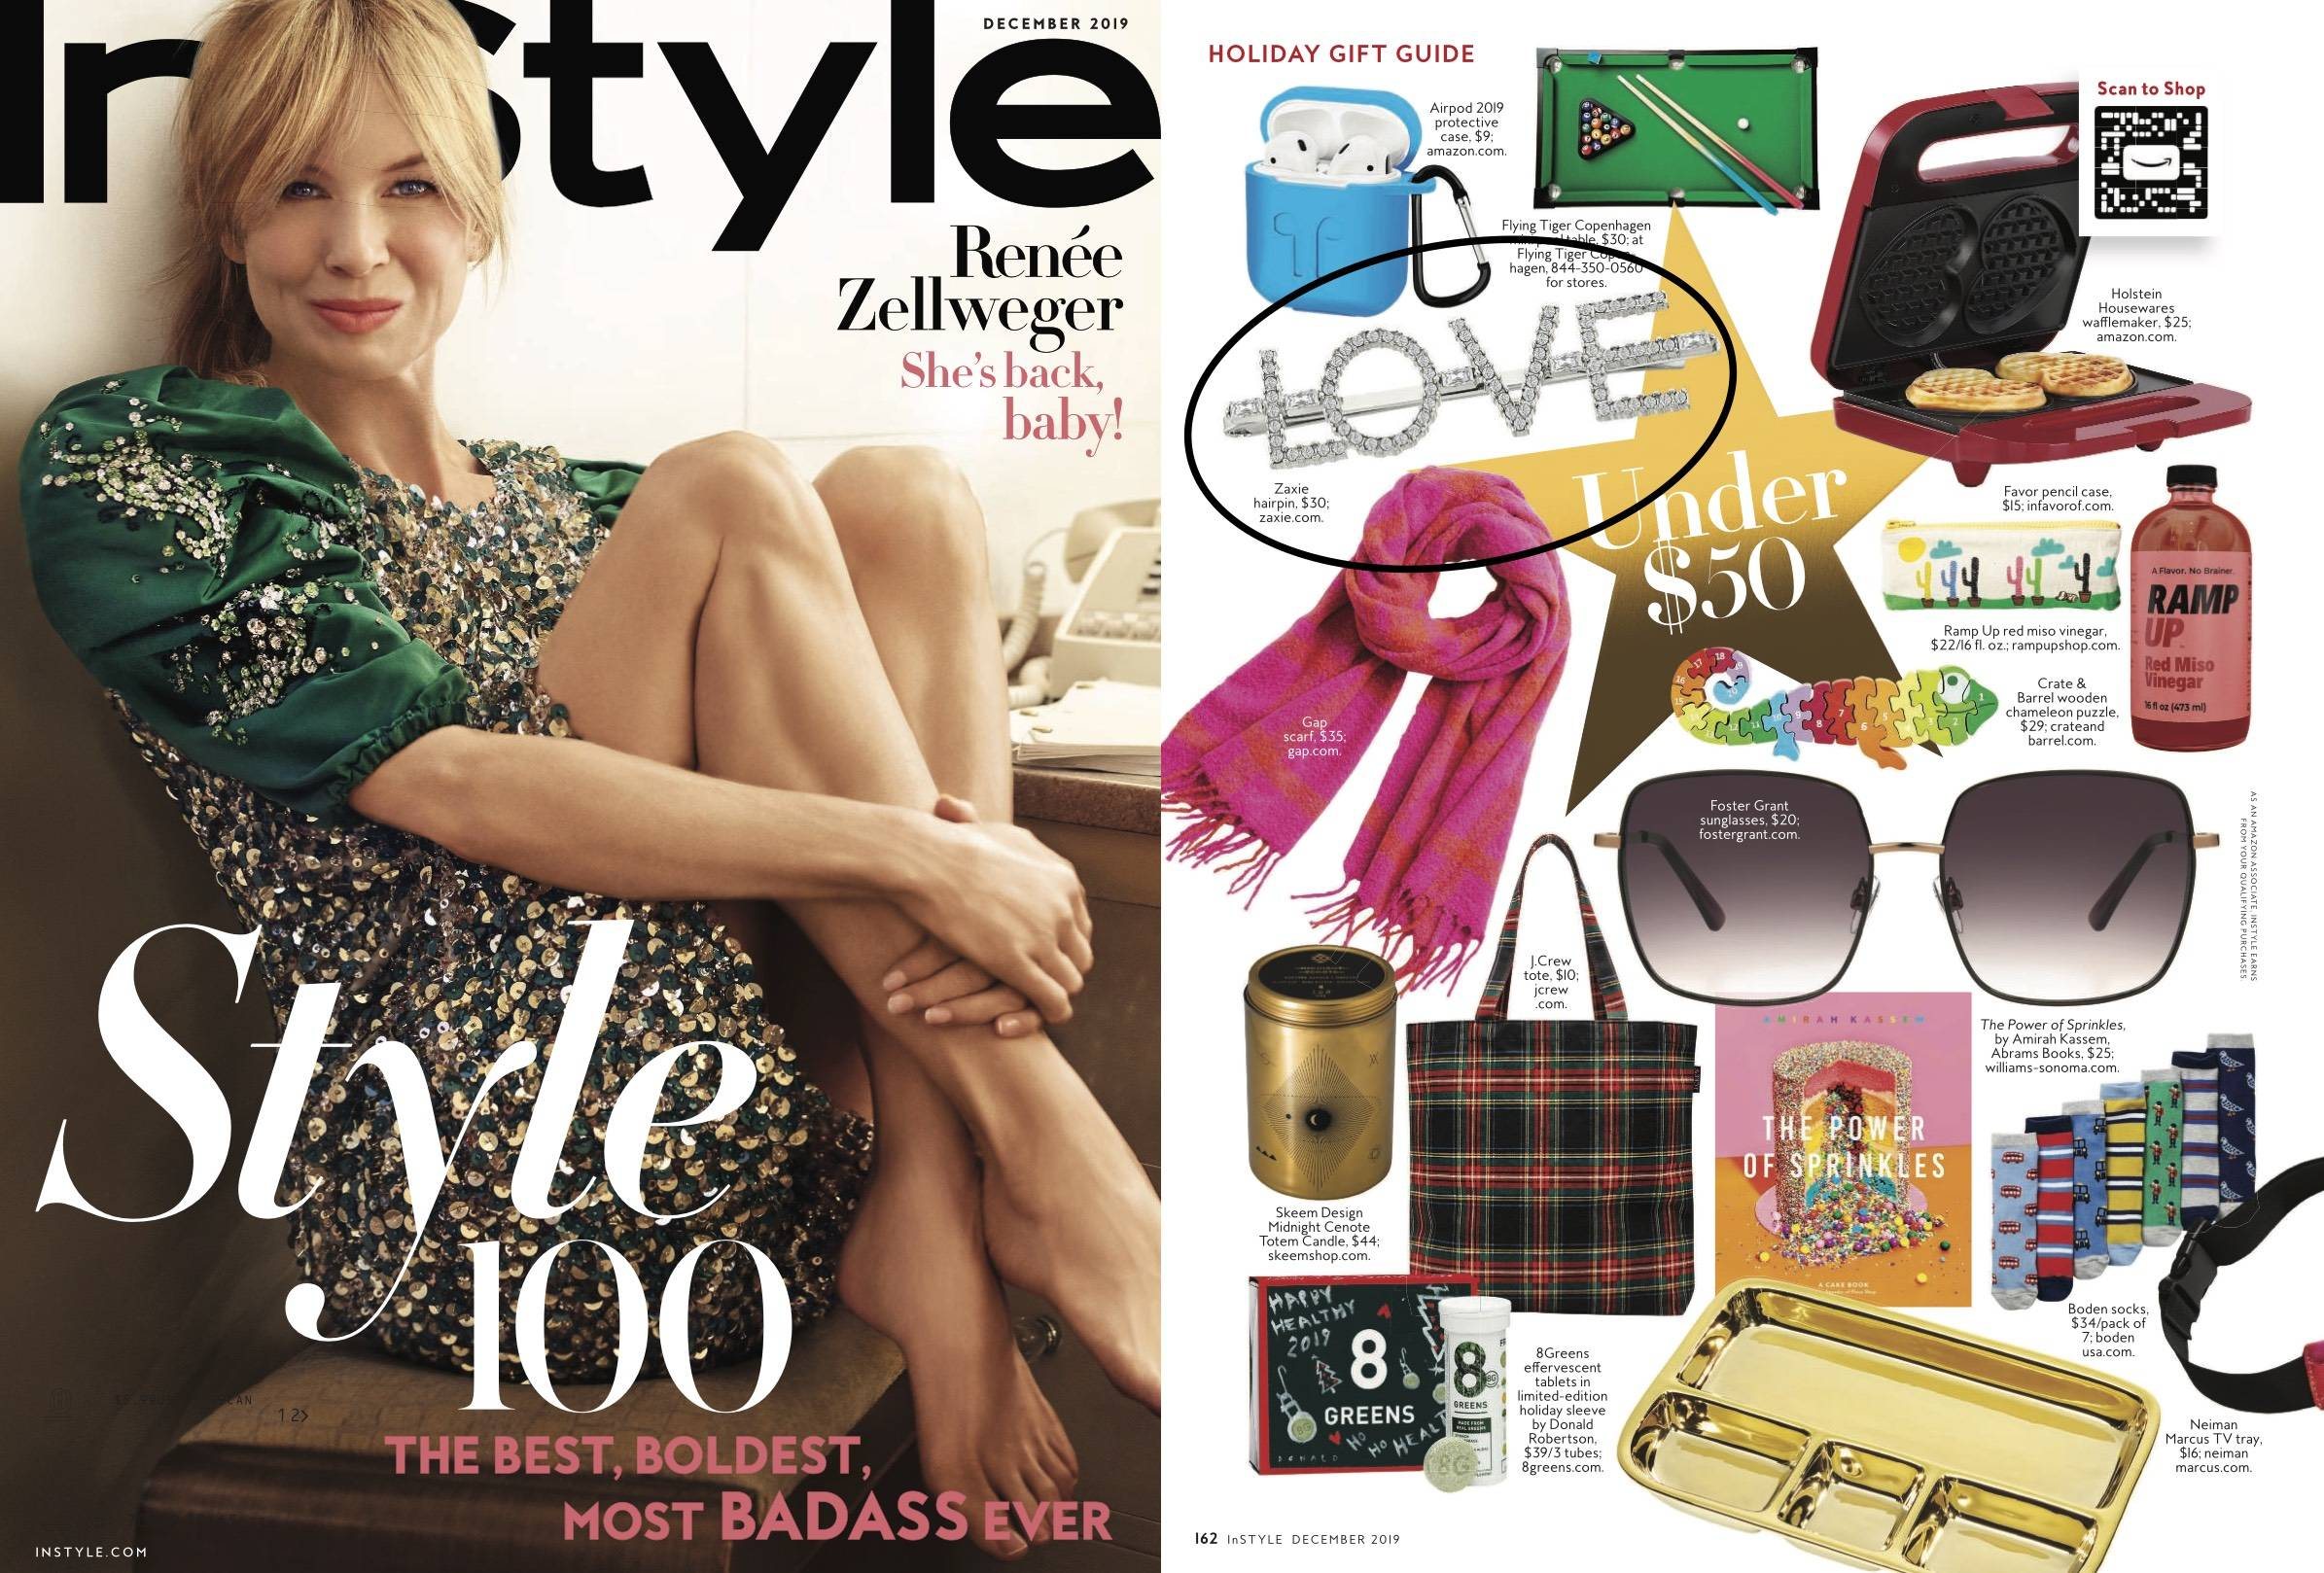 ZAXIE love hair pin in InStyle Gift Guide